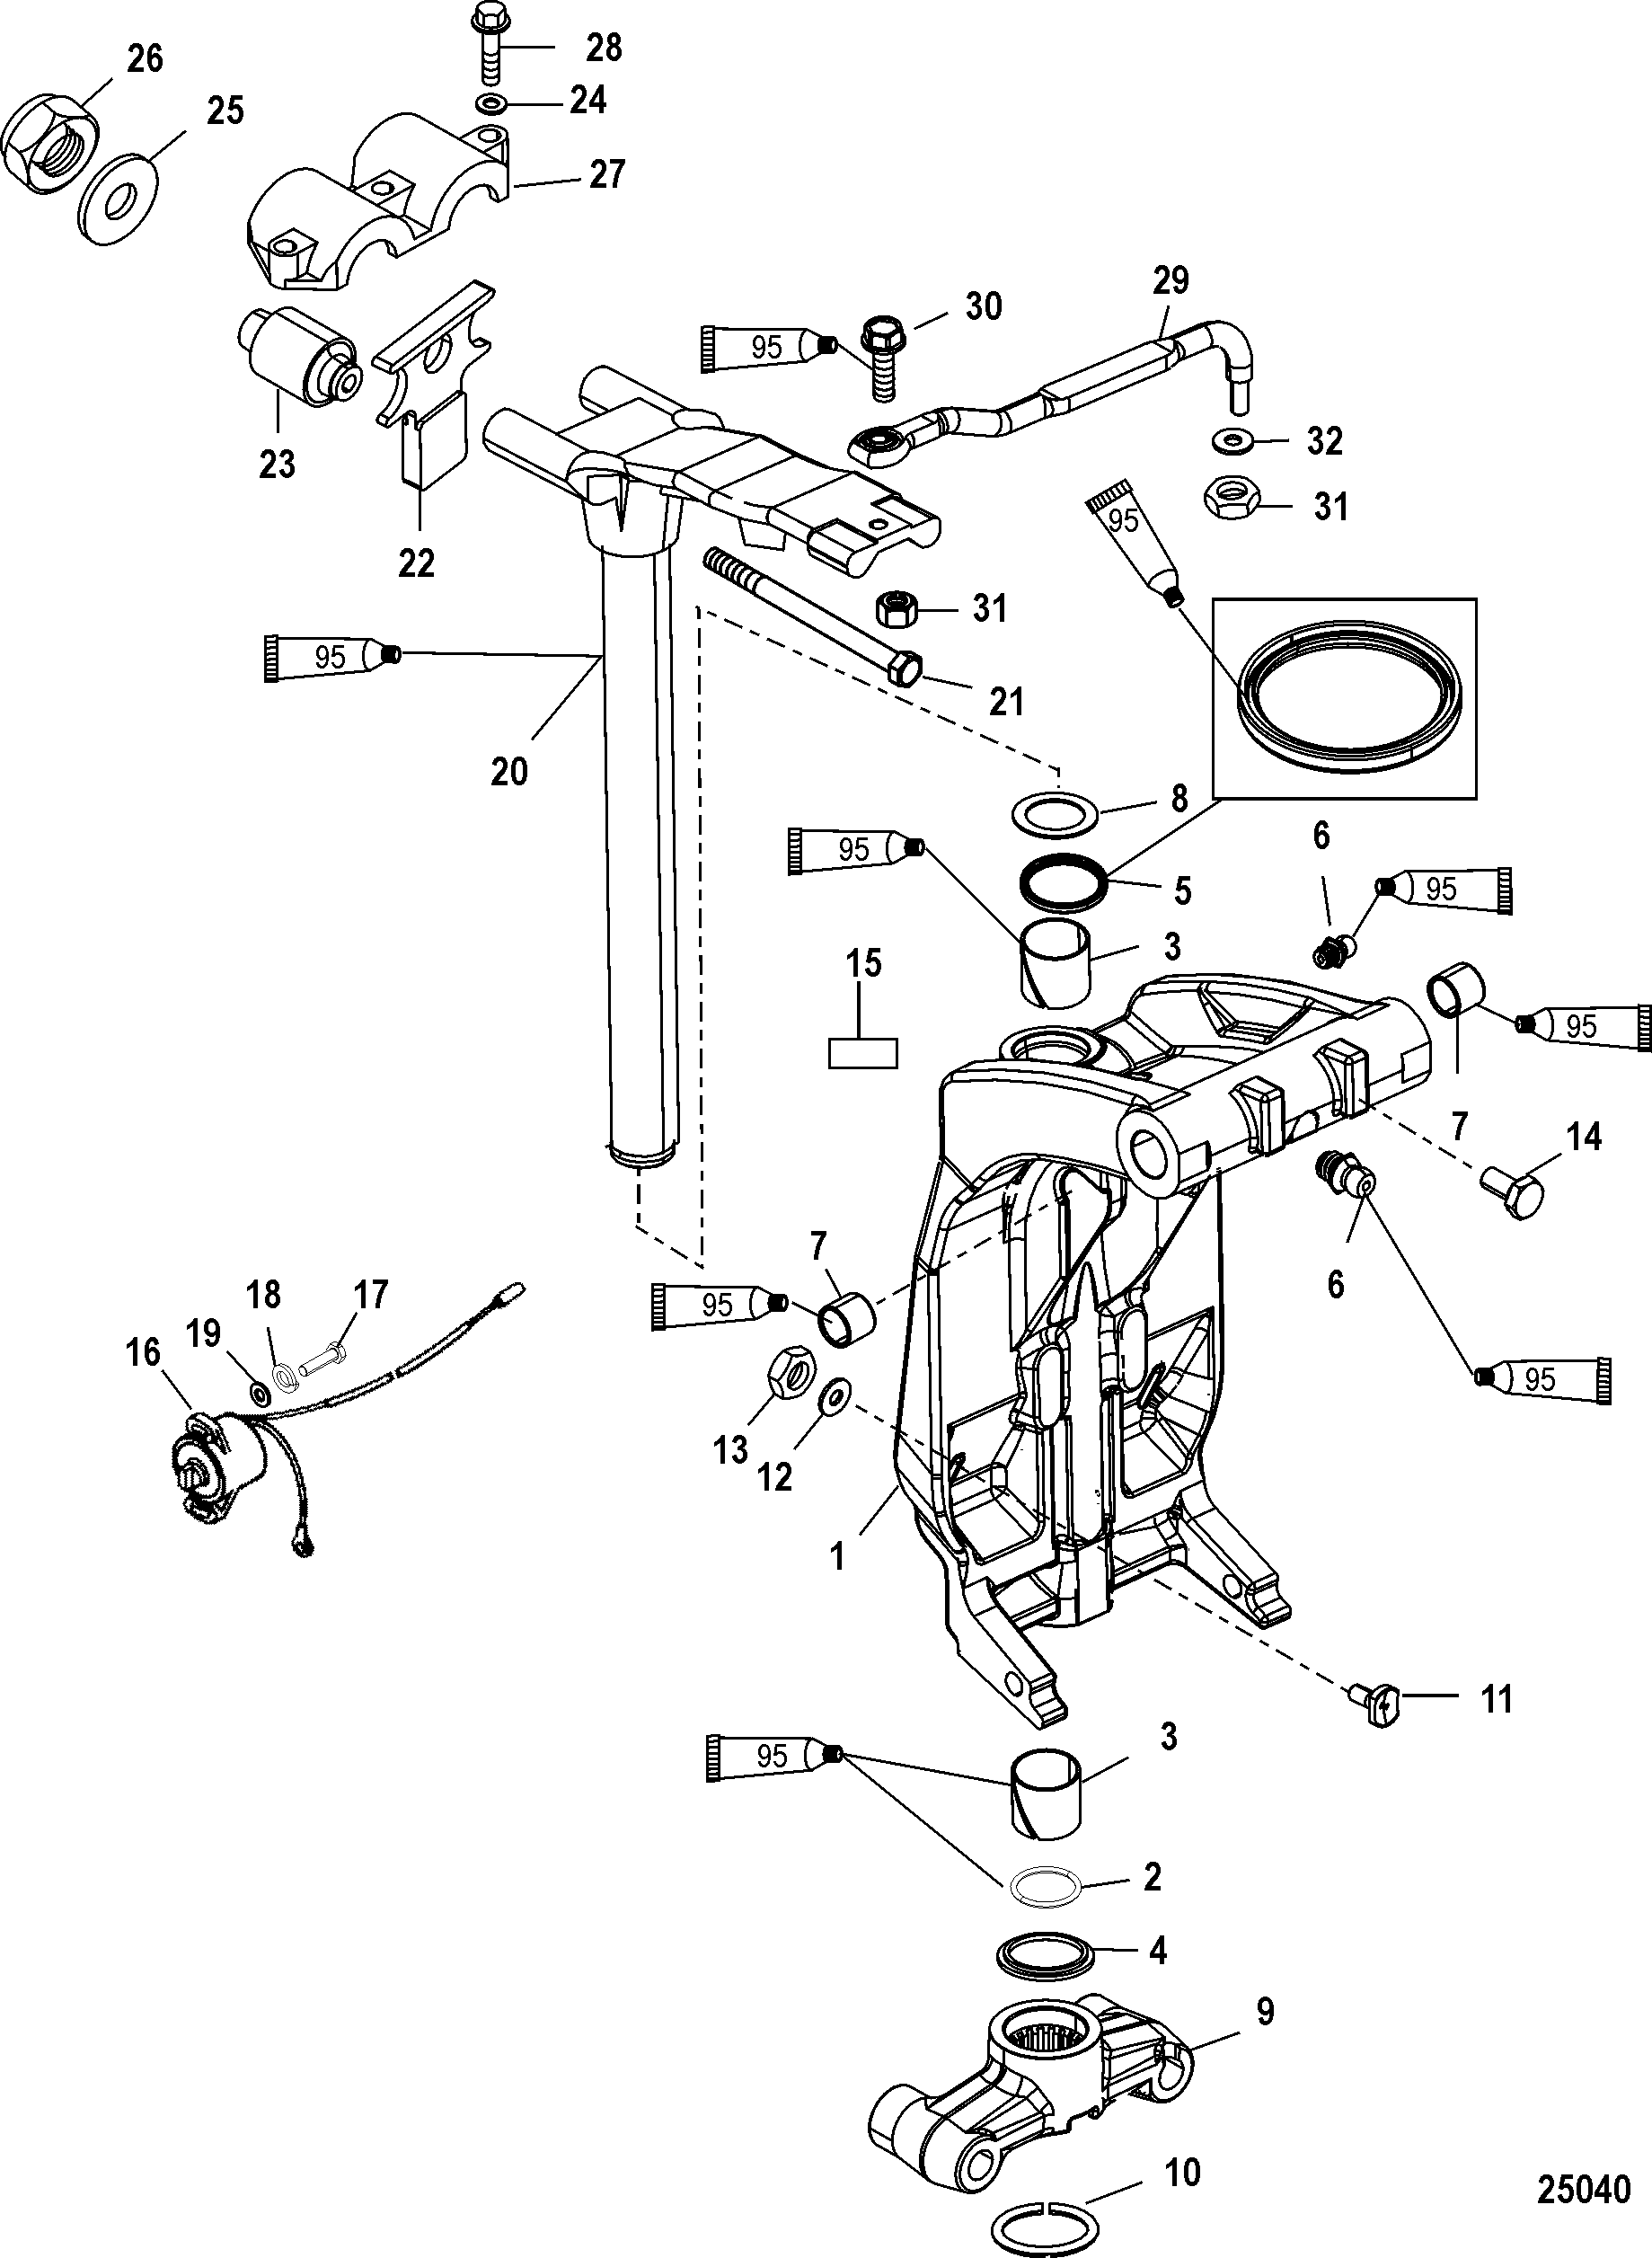 Wiring Diagram For Mercury Outboard Gauges